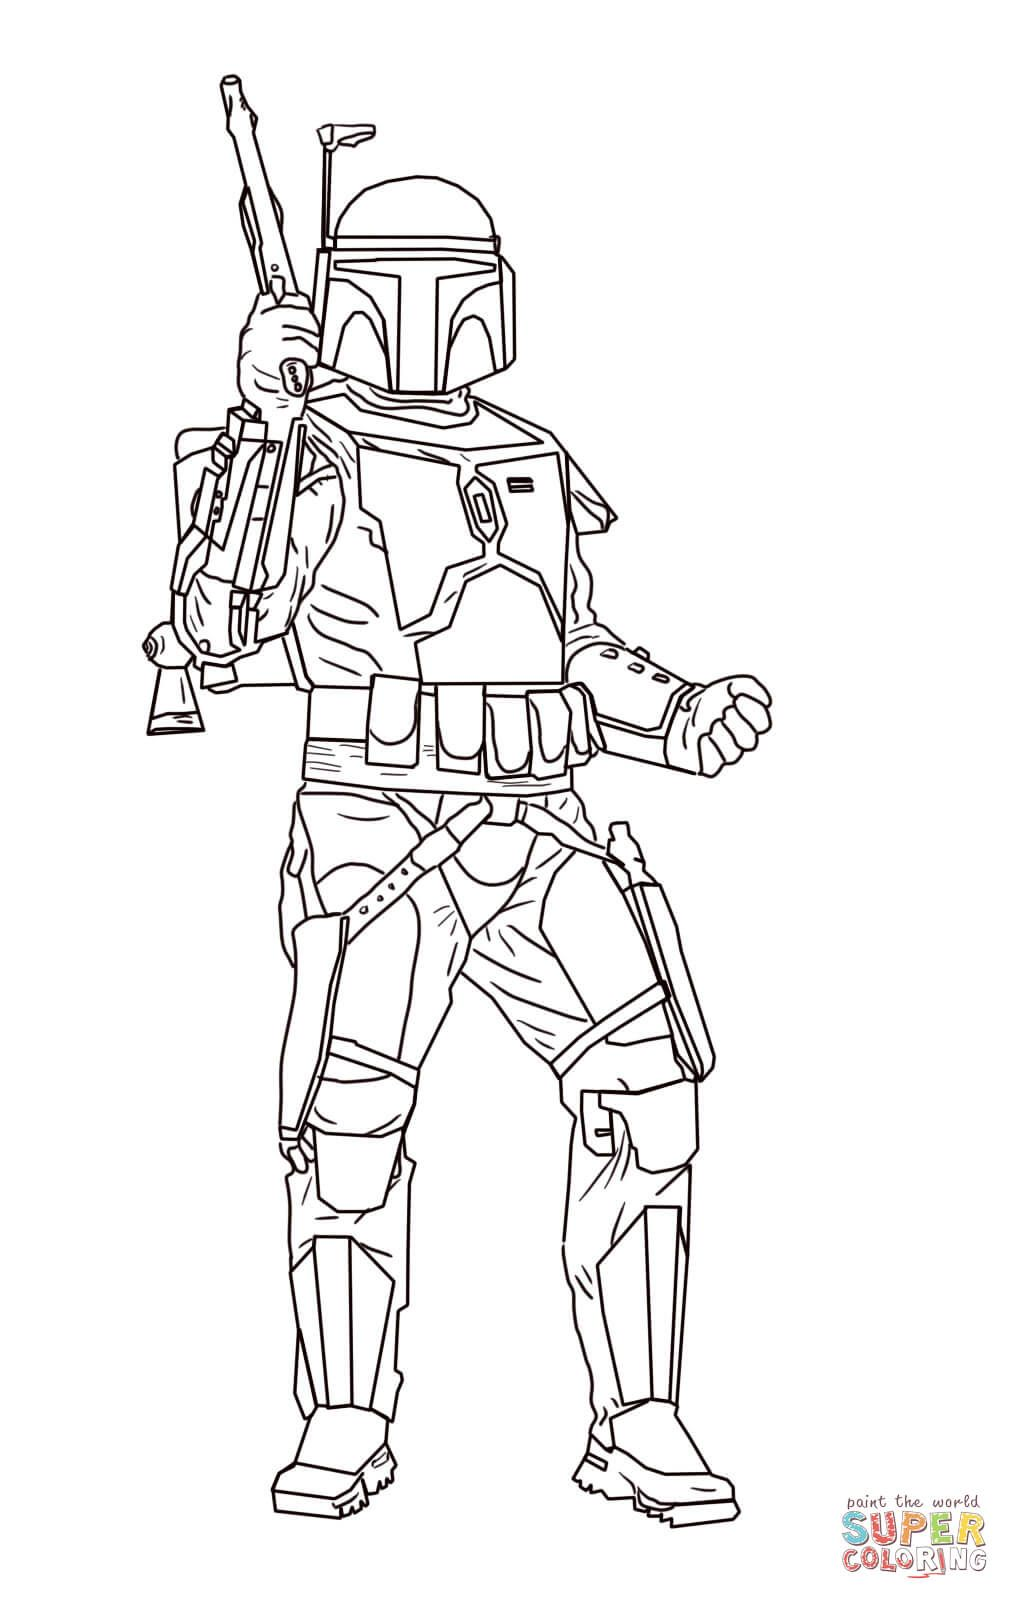 Jango Fett Super Coloring Lineart Star Wars Jango Fett Star